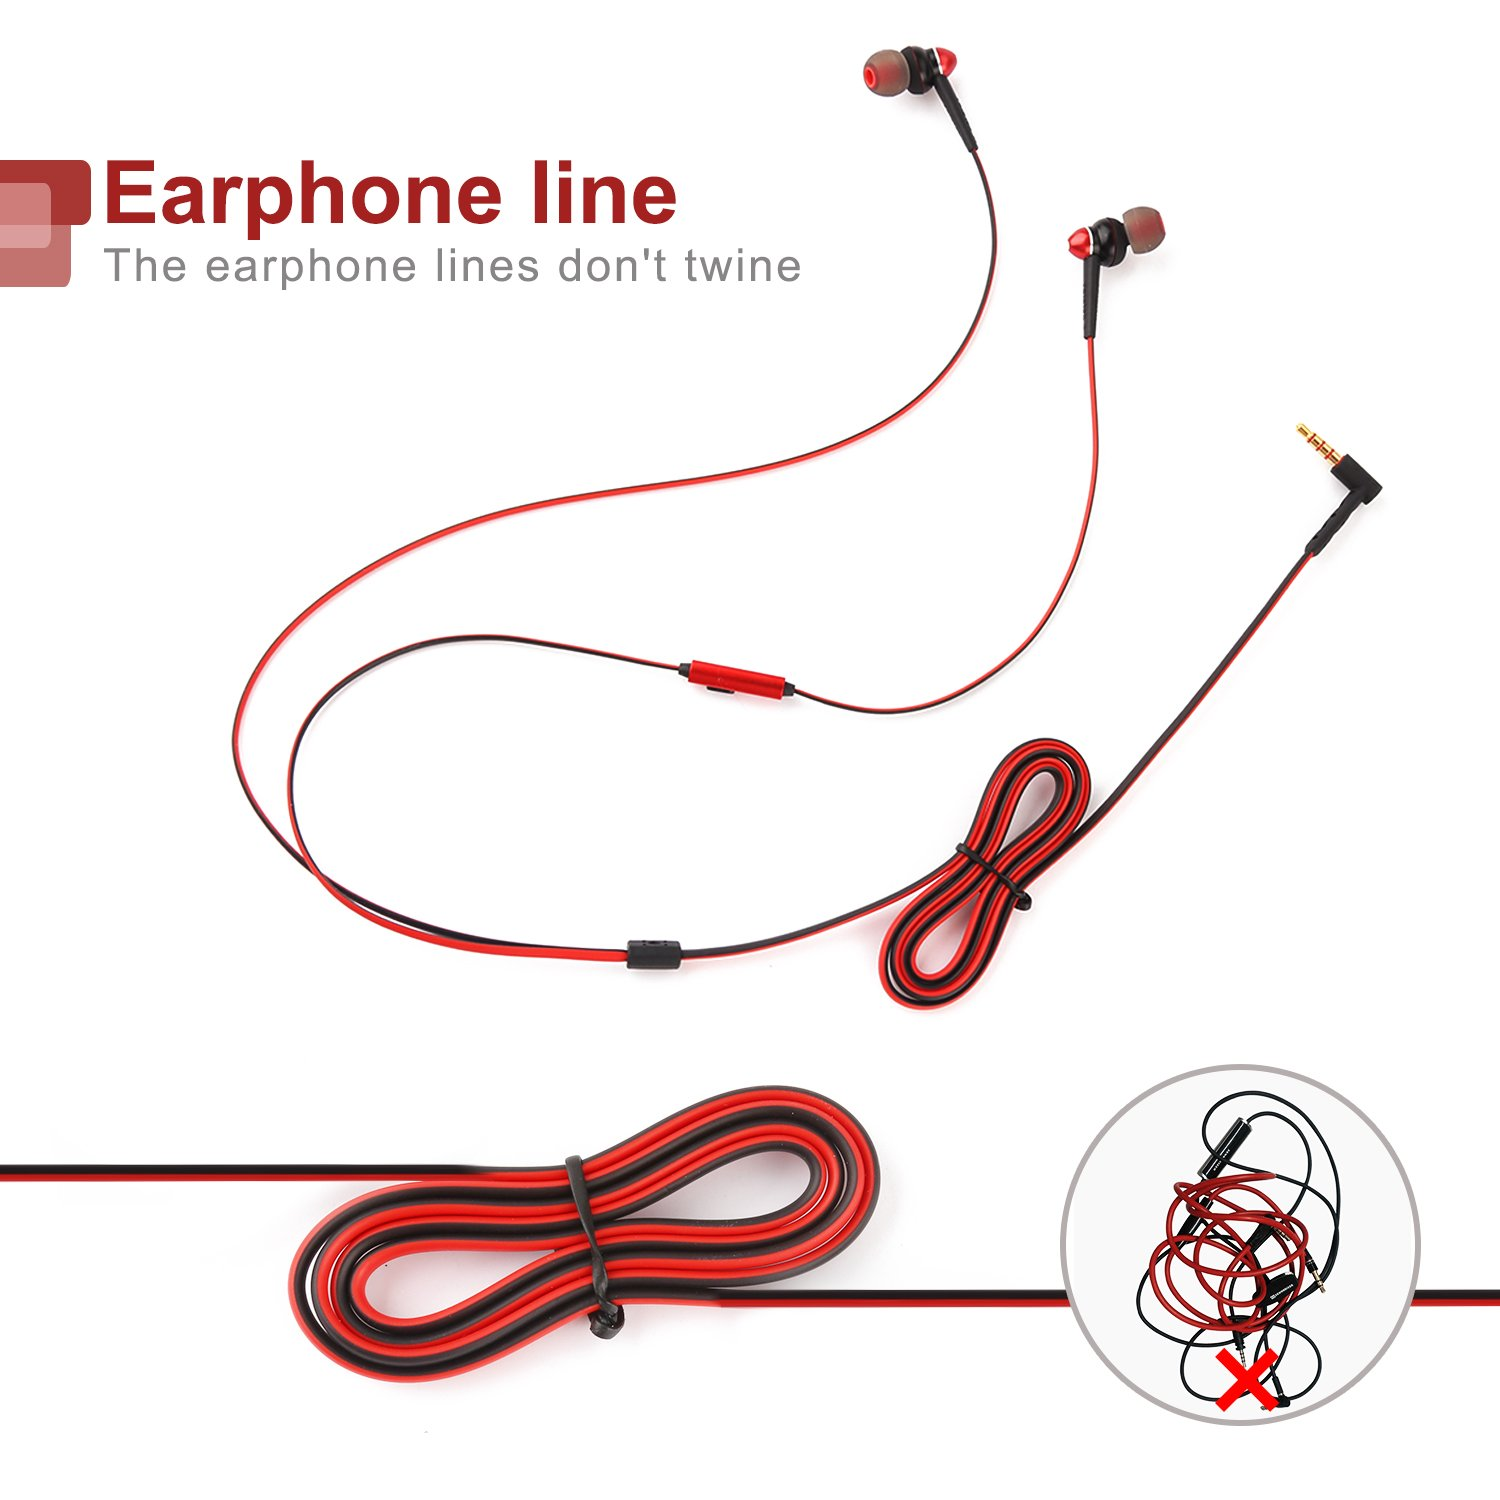 Ifrogg Headset Mic Wiring Diagram Trusted Schematics Earphone Usb Wire For Electrical Diagrams Schematic Light